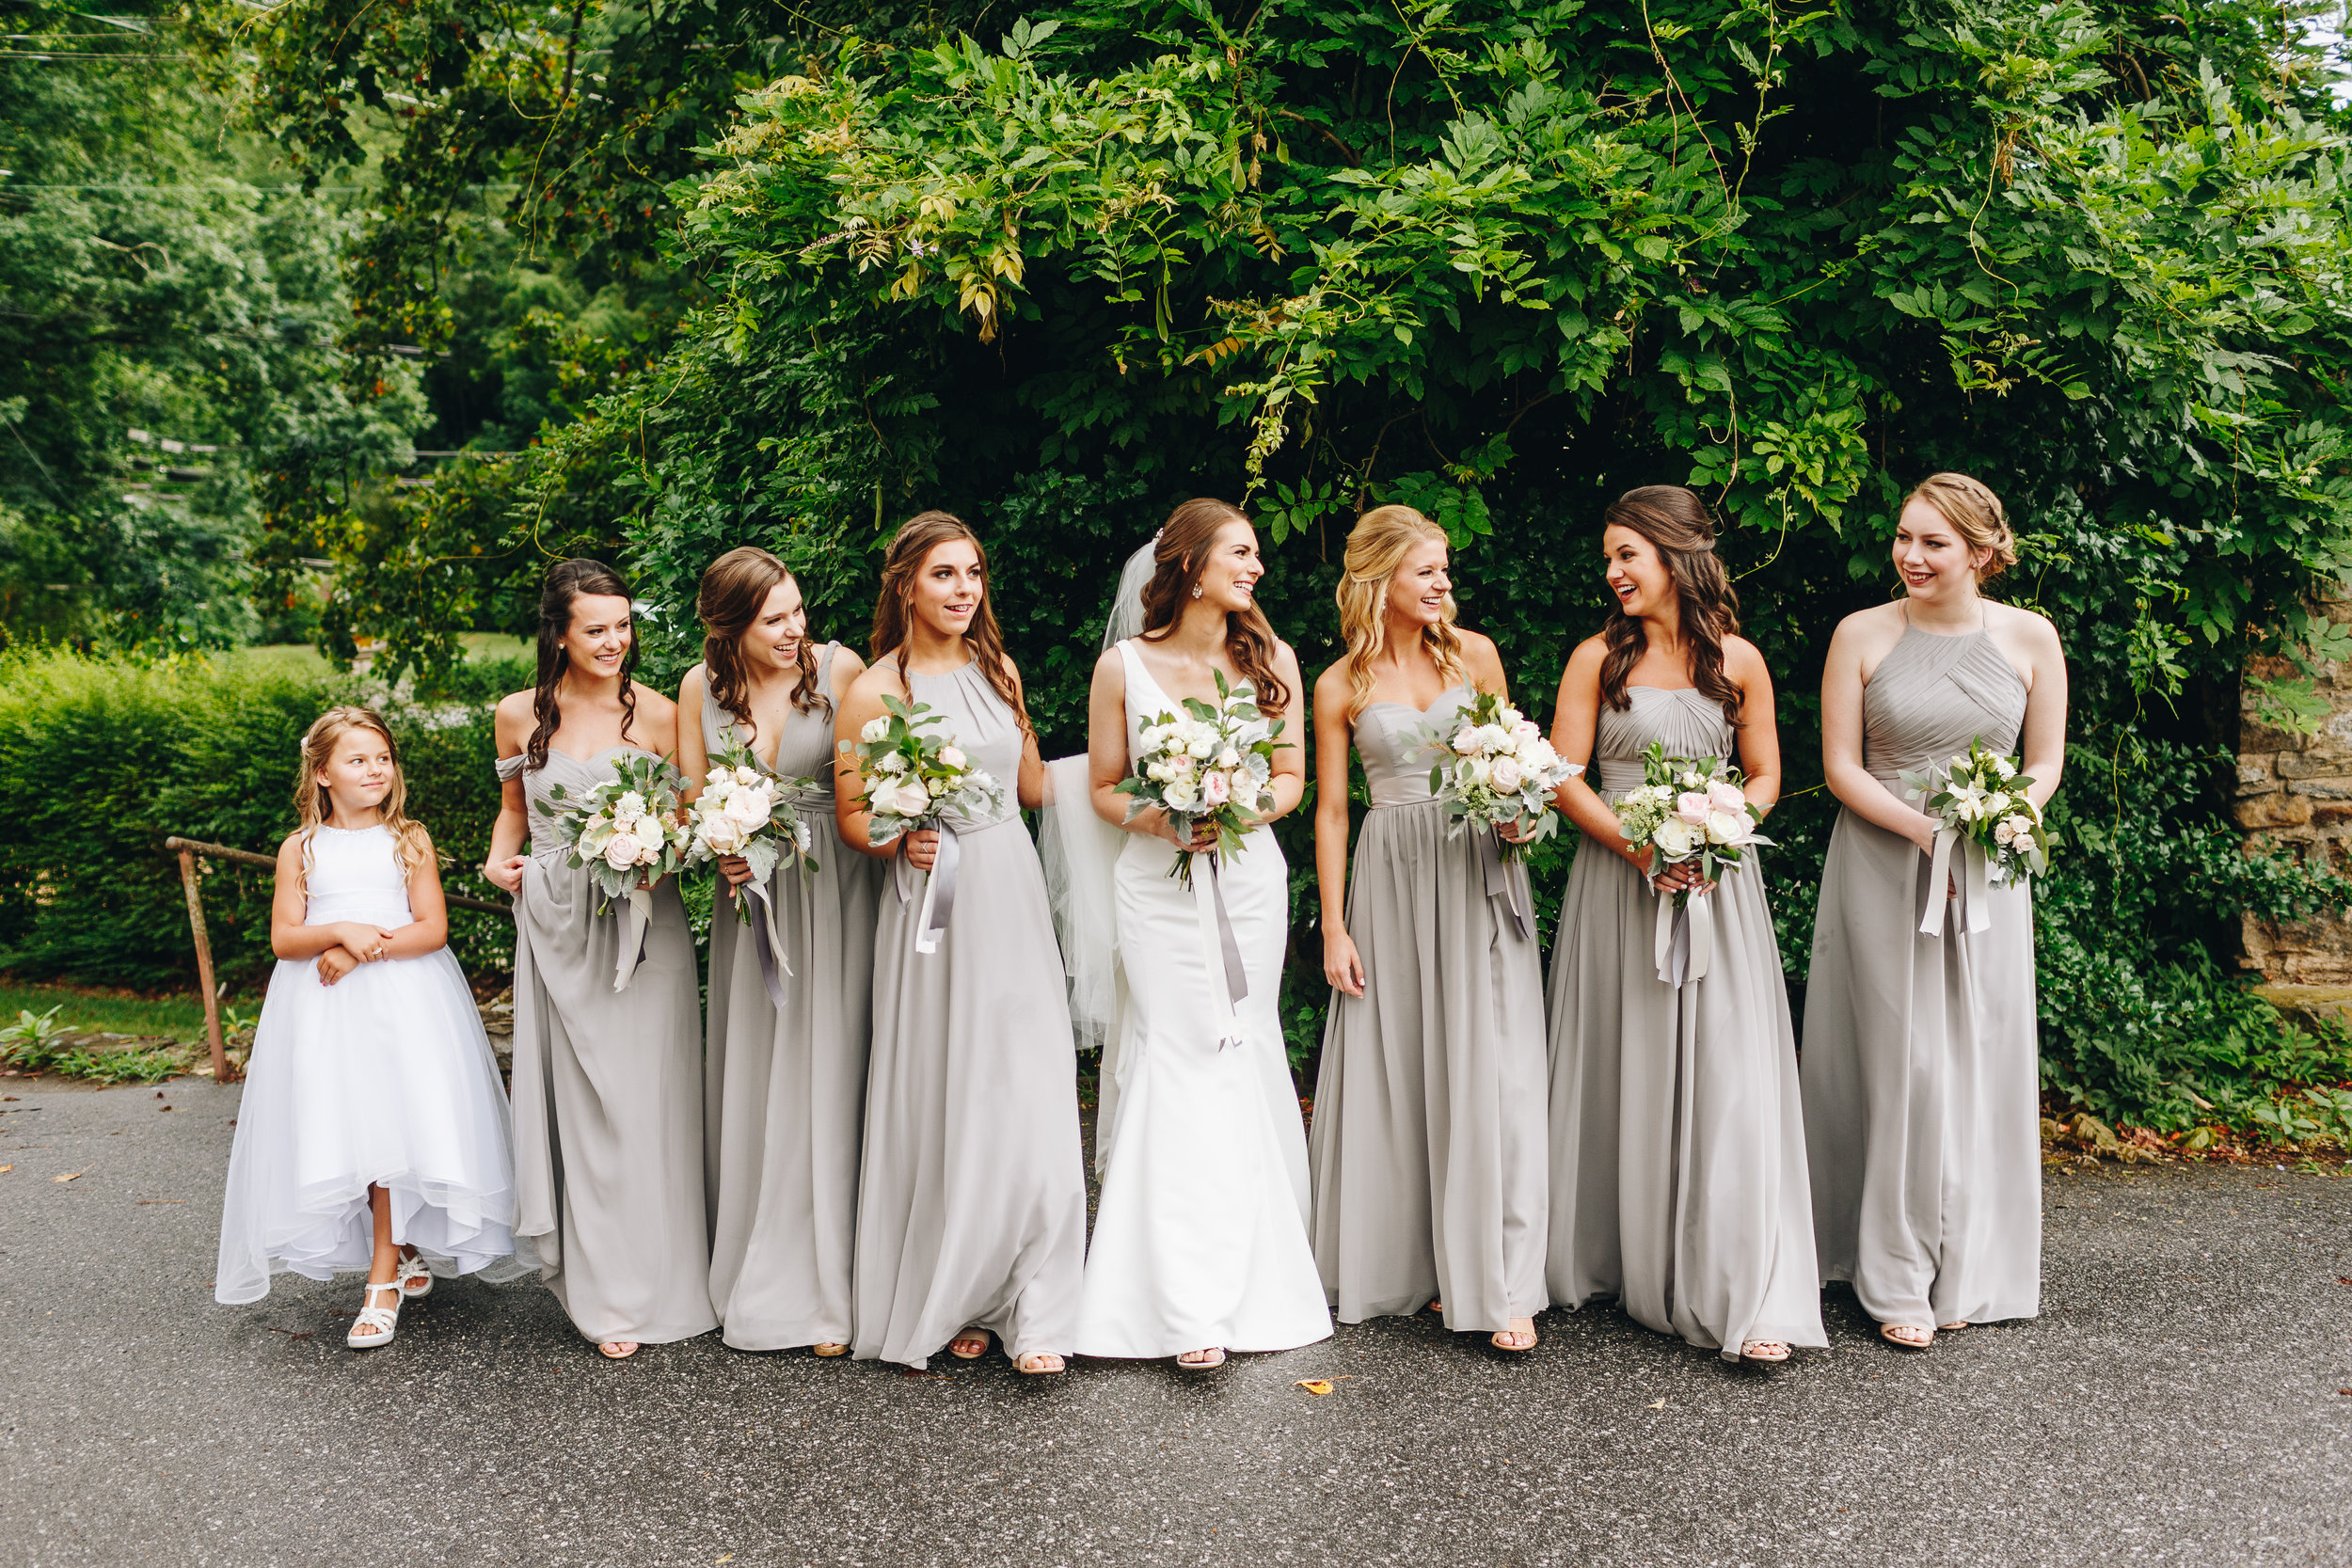 bridesmaids fun and happy portraits